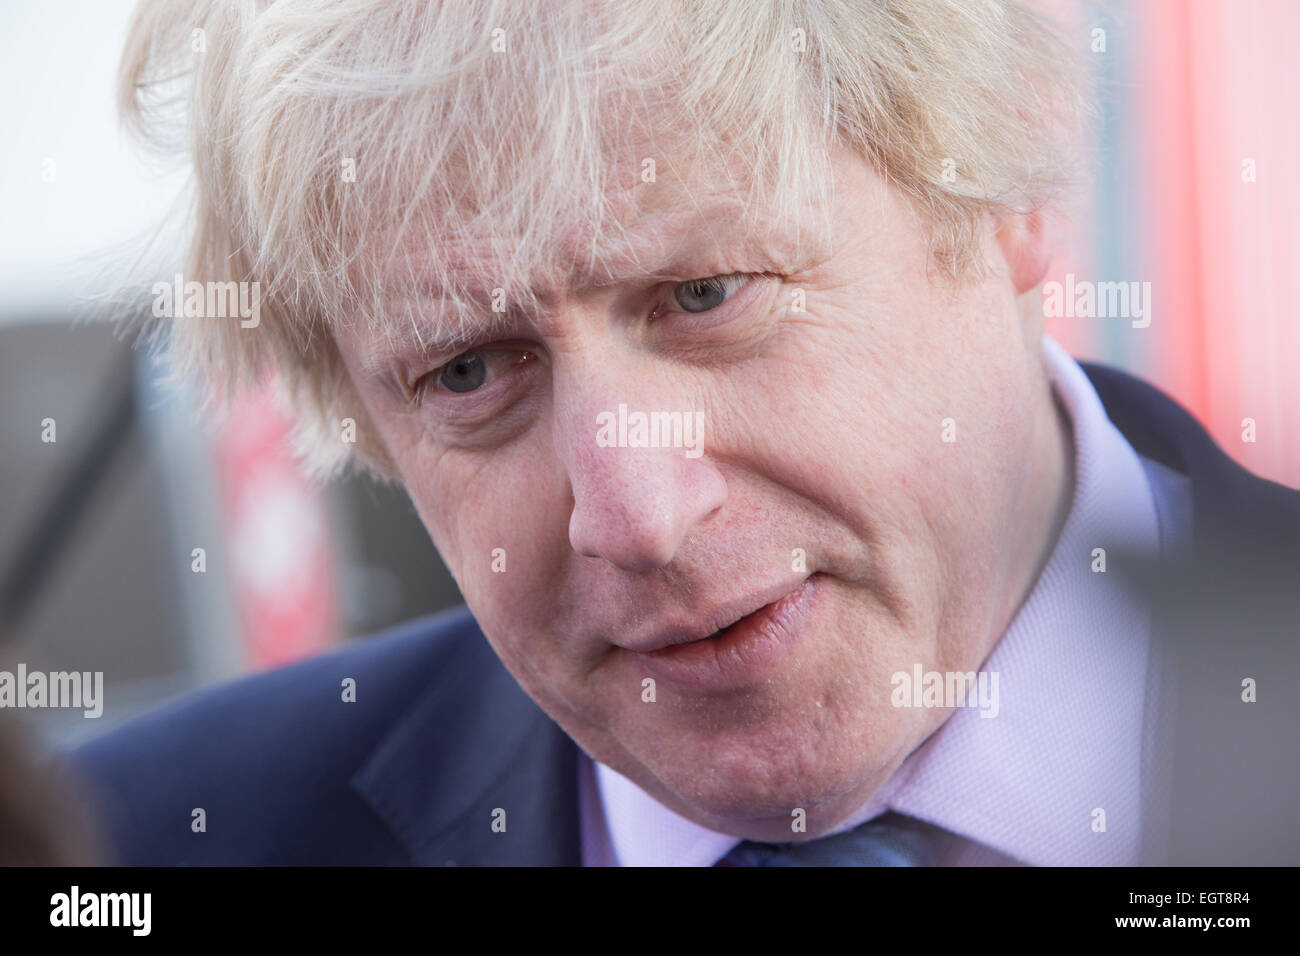 London Mayor,Boris Johnson,speaks at an event promoting cycle hire in London - Stock Image